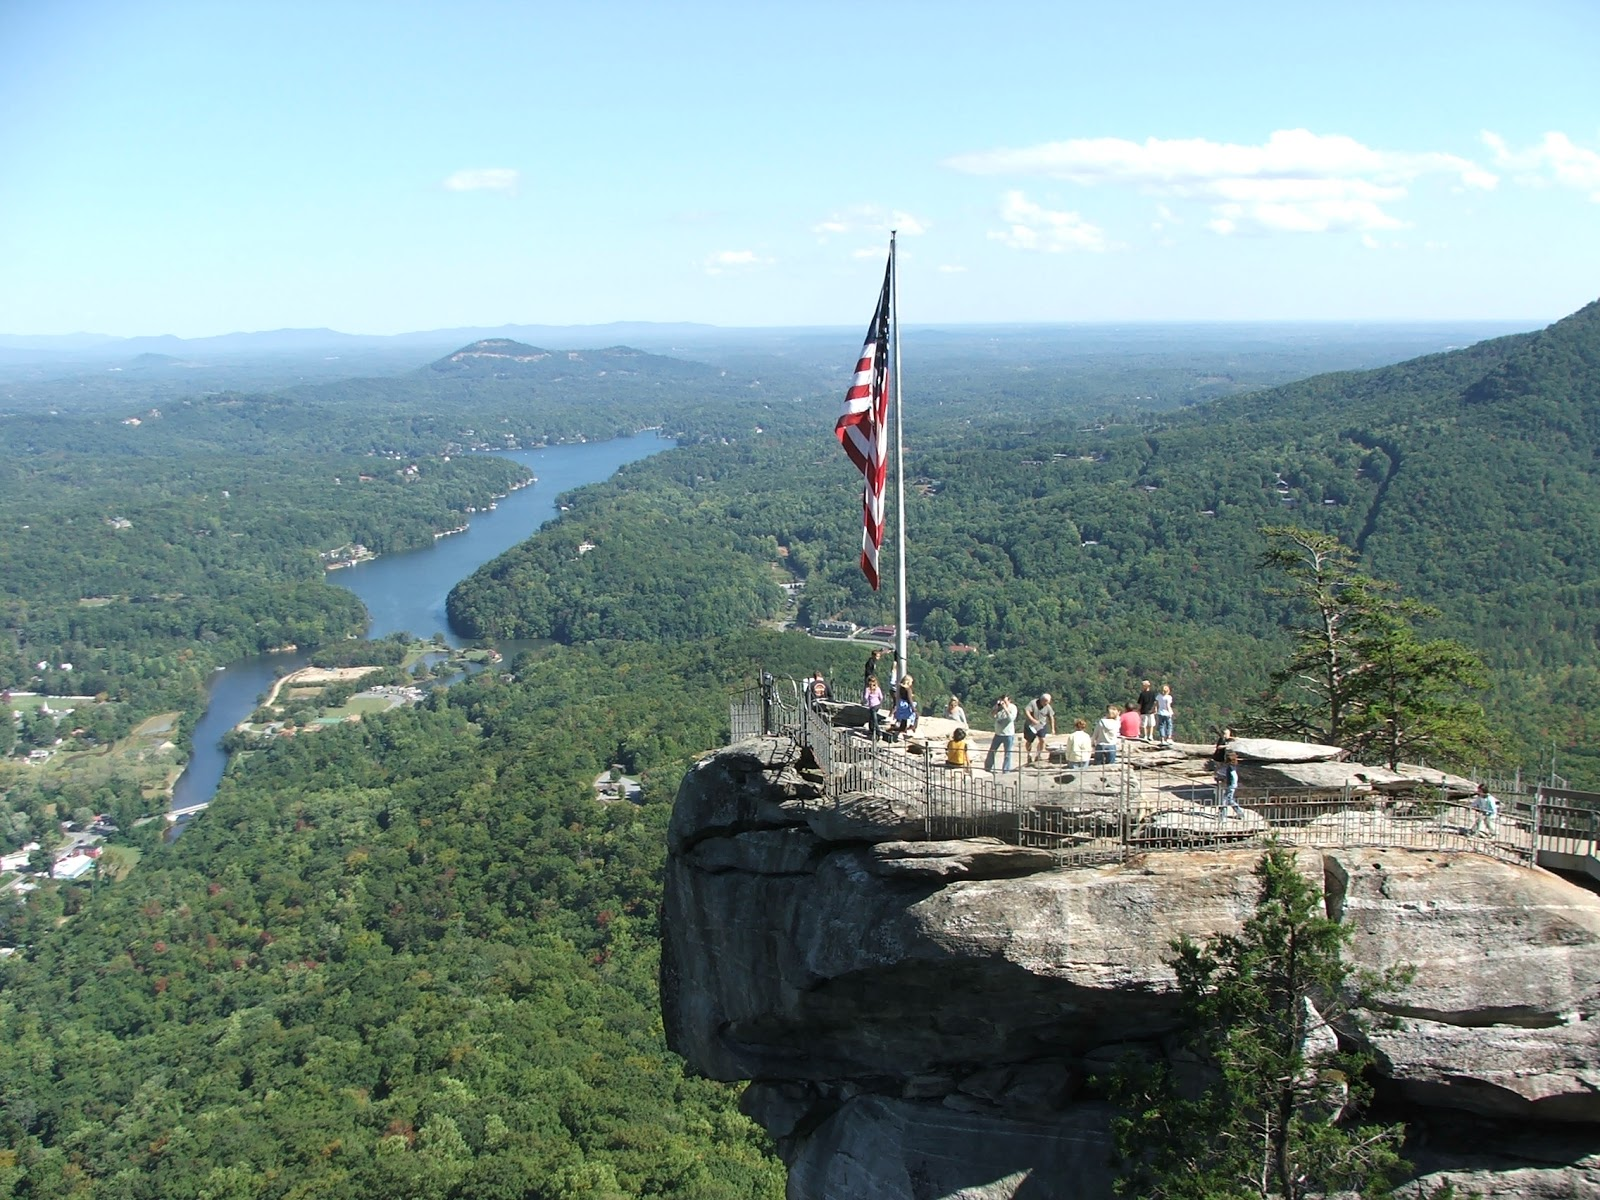 Visit Chimney Rock Park Spectacular Waterfalls 25 Miles